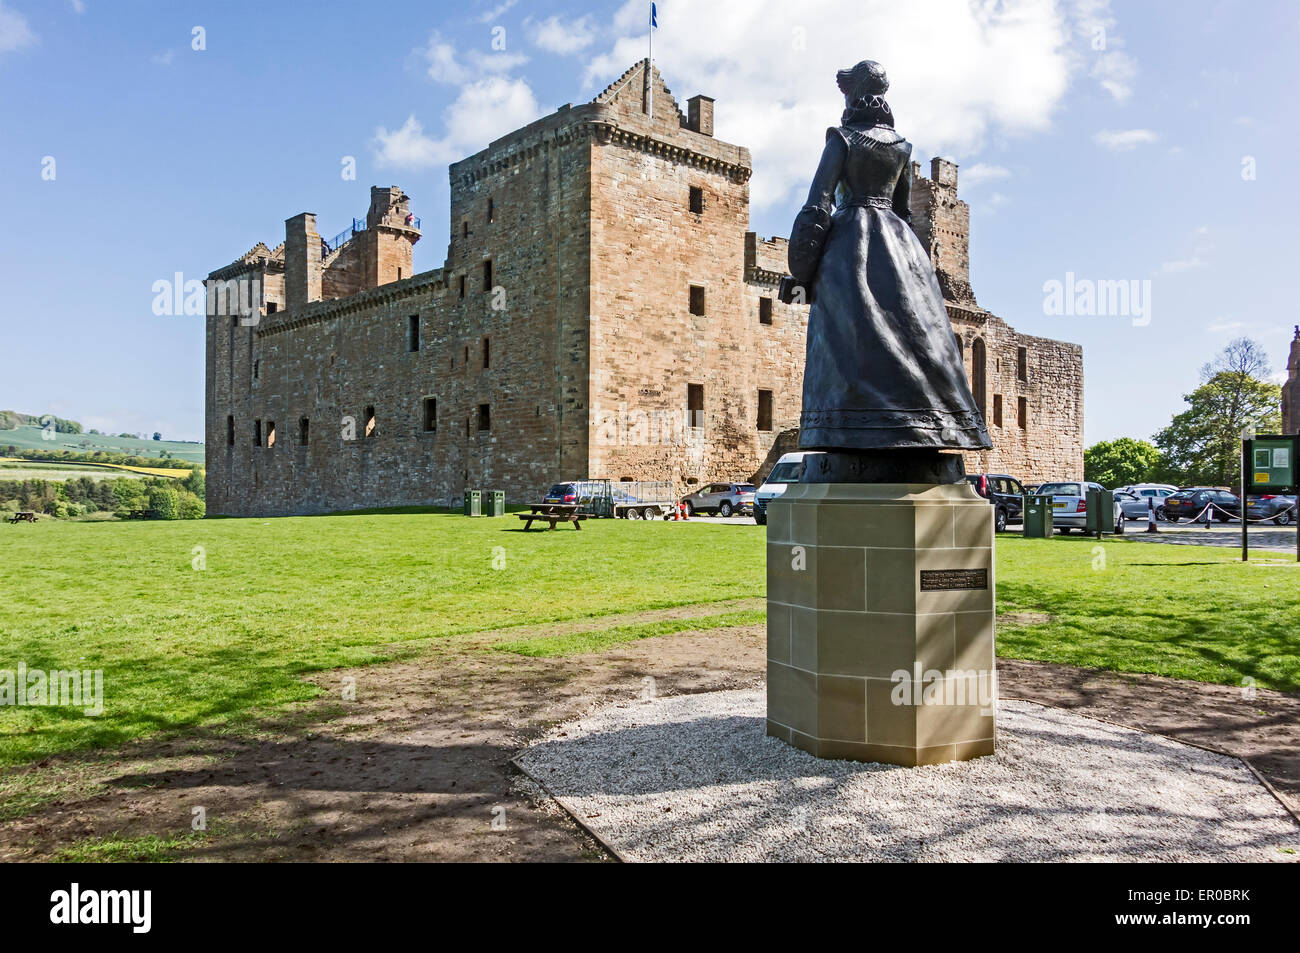 Statue of Mary Queen of Scots looking at Linlithgow Palace  In Linlithgow West Lothian Scotland where she was born - Stock Image